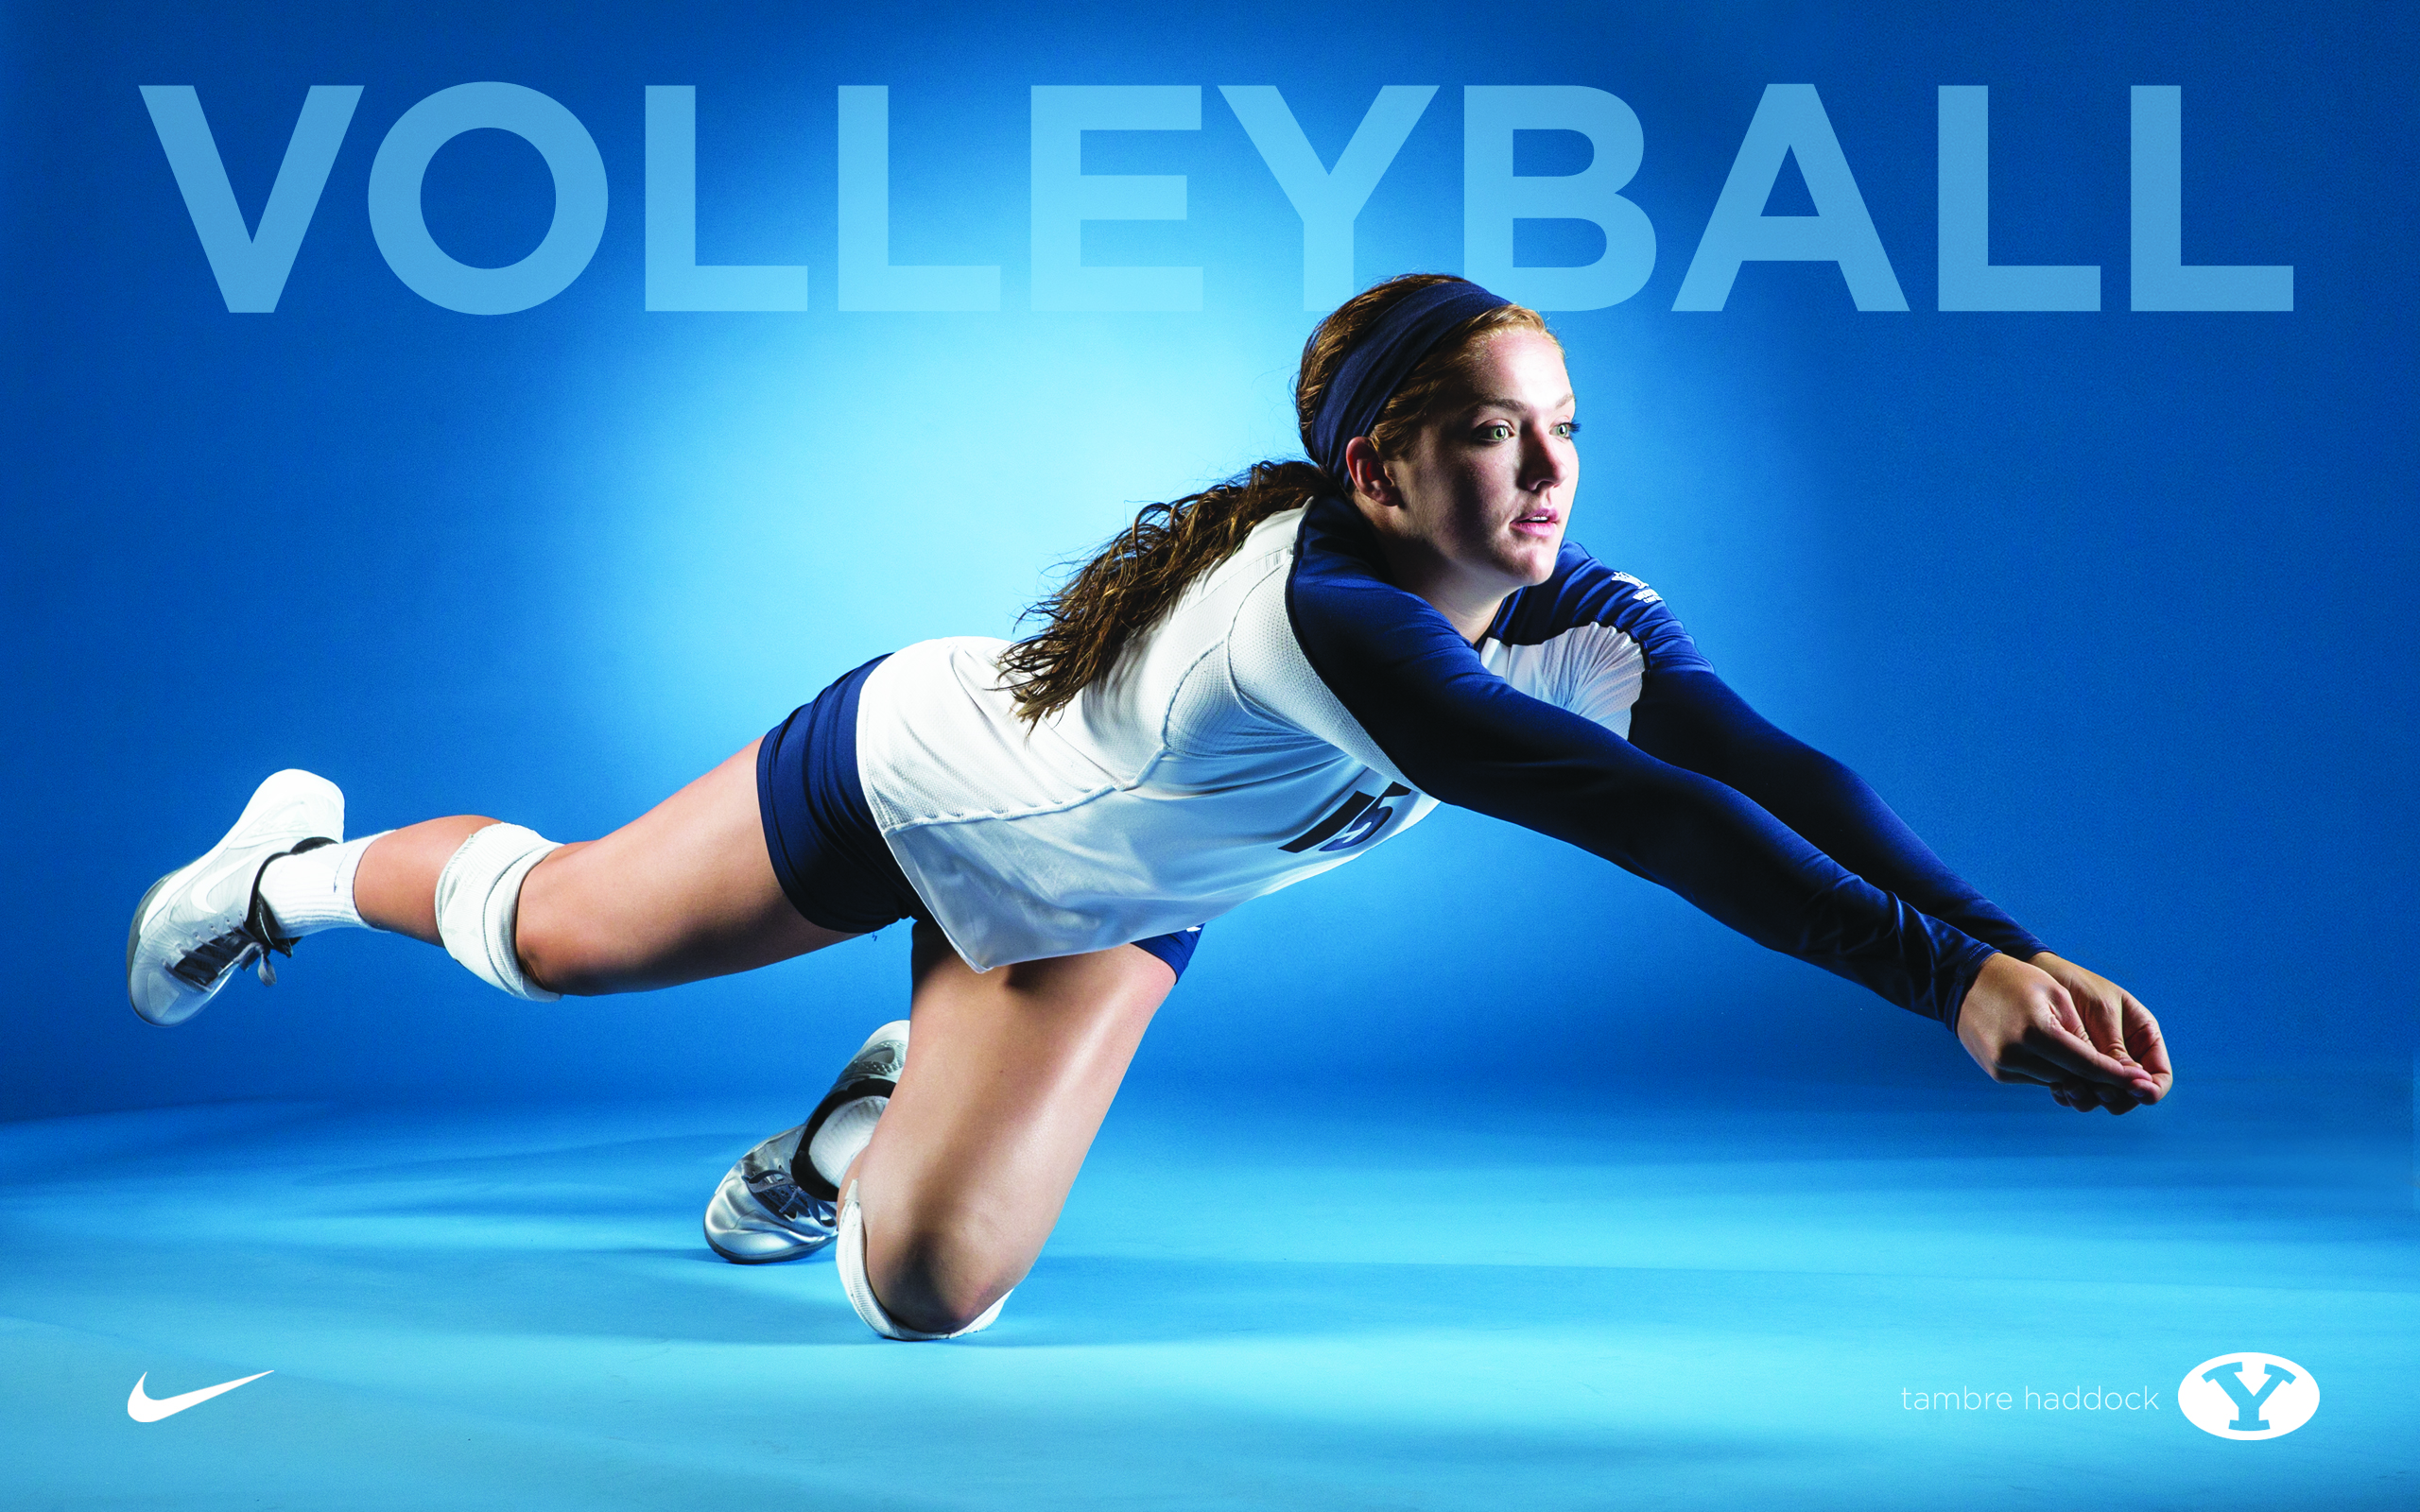 Volleyball Wallpapers High Quality